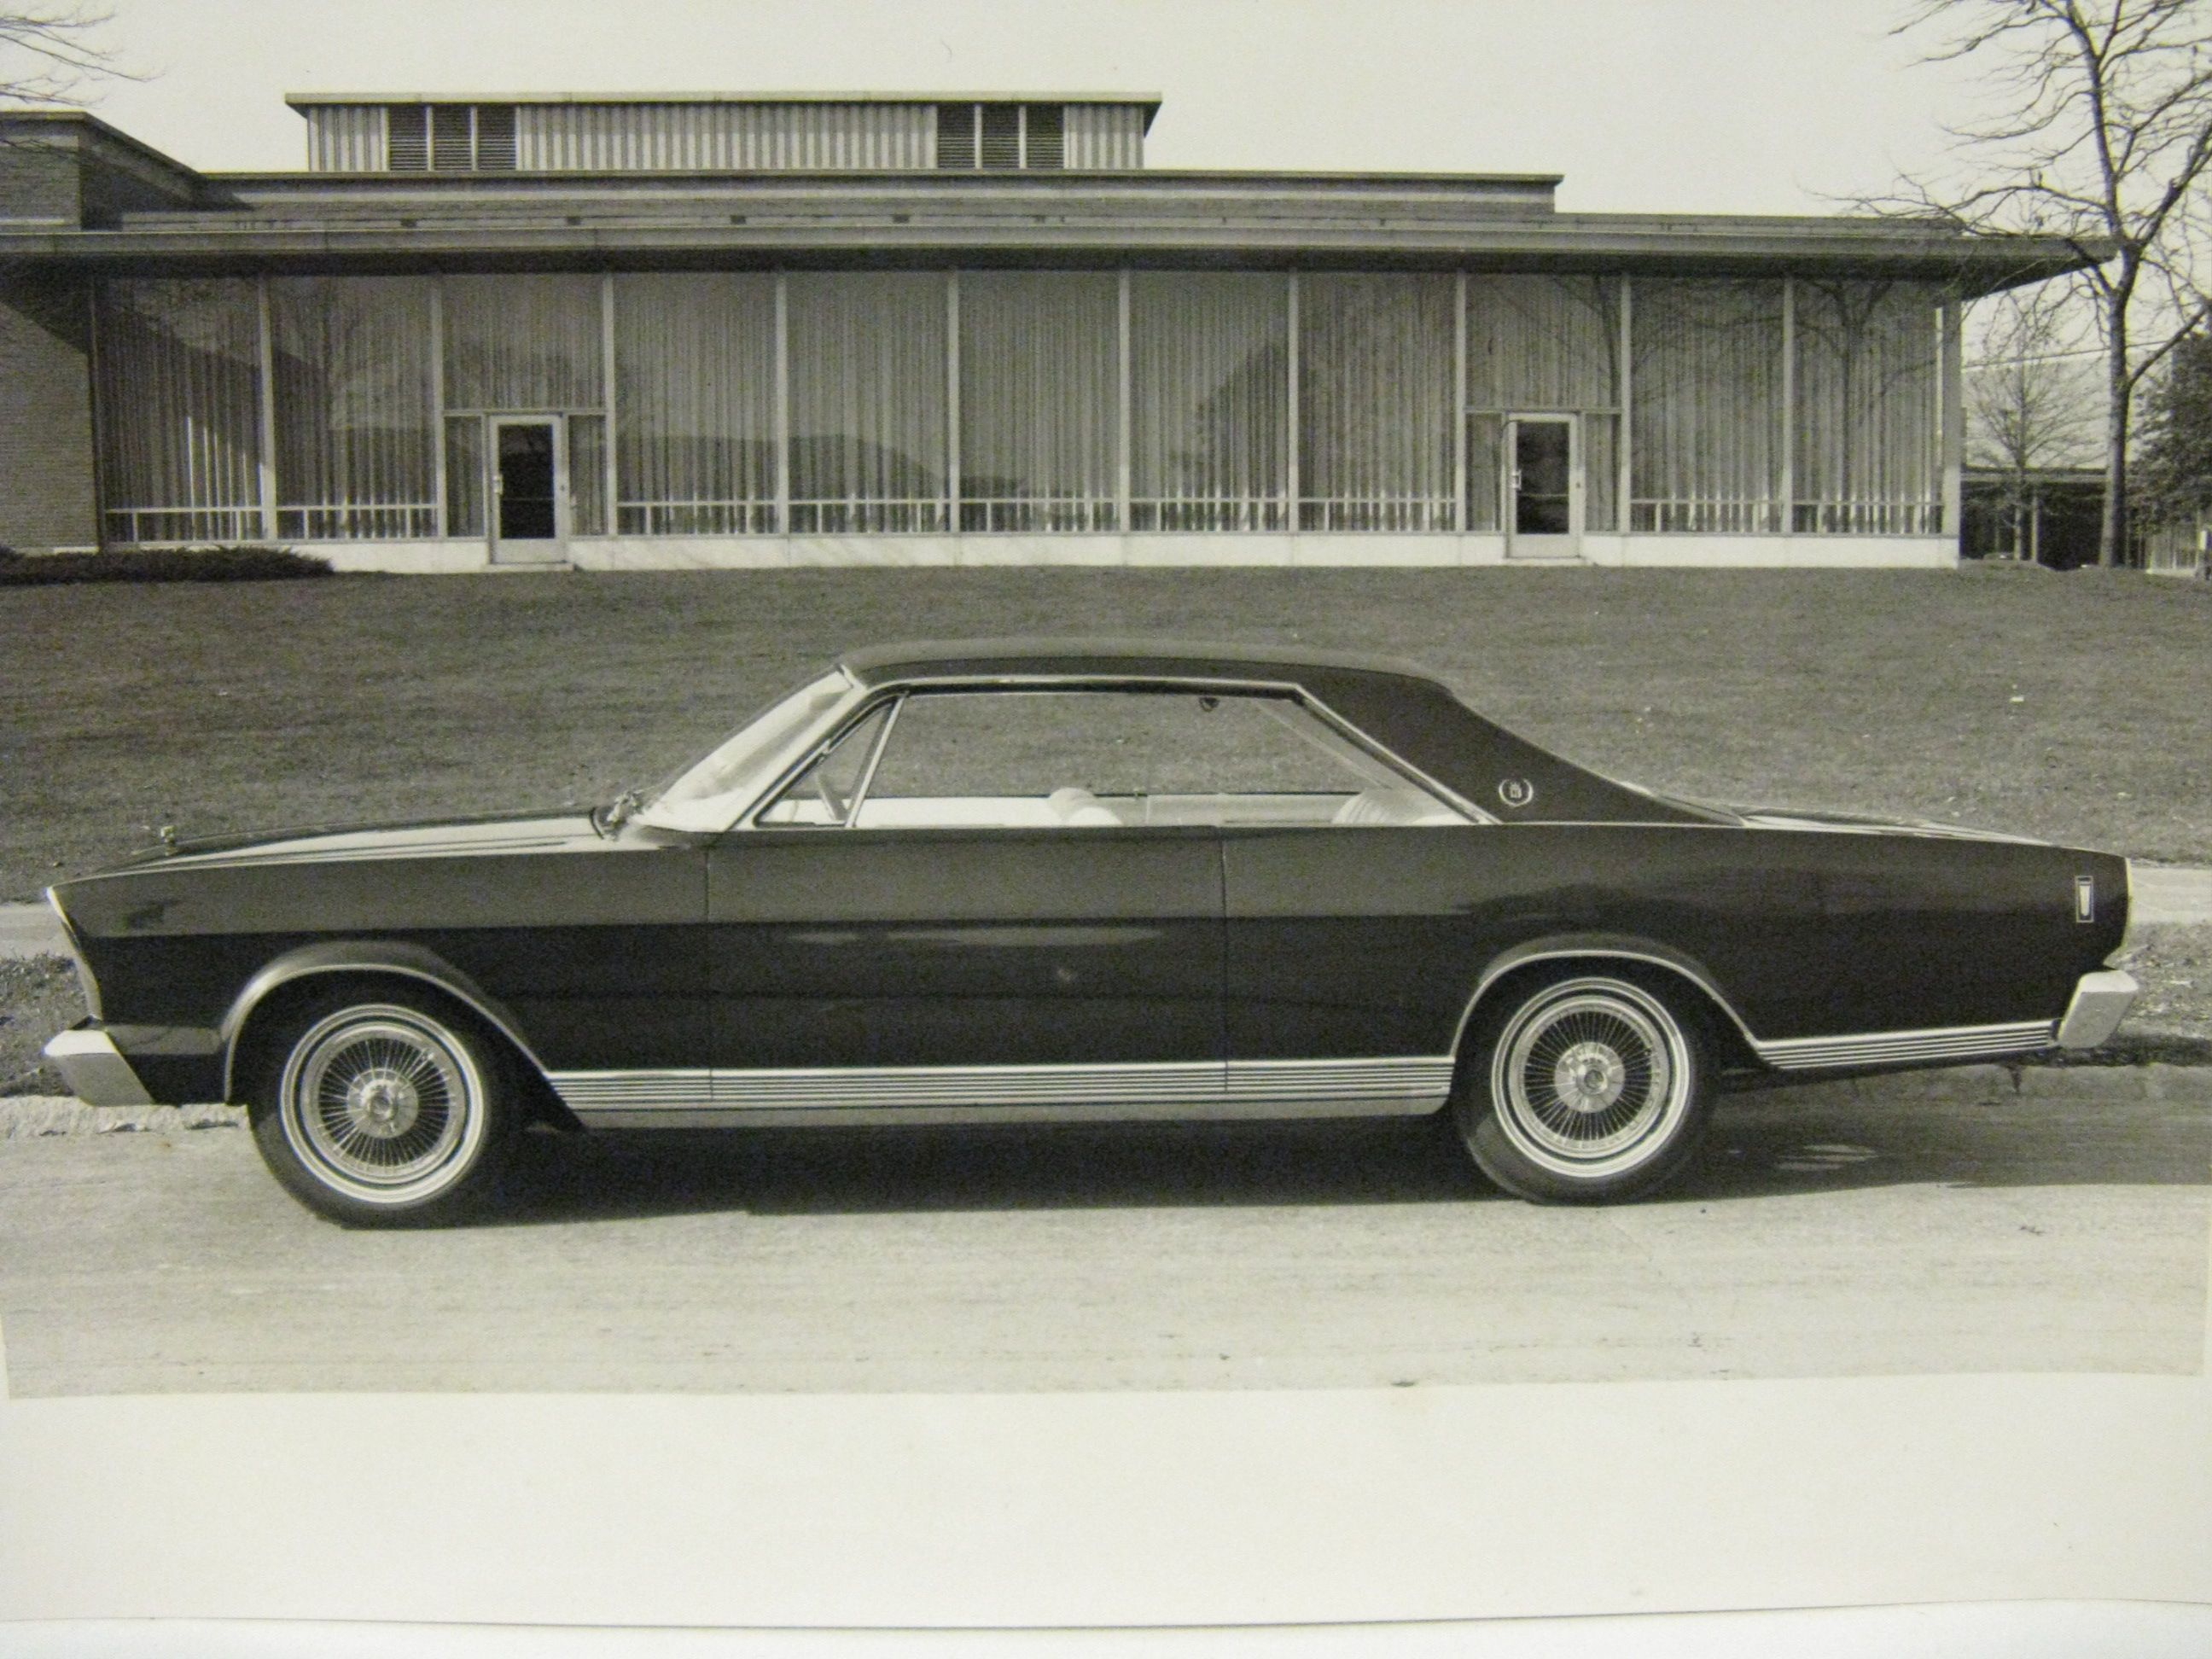 8 X 10 Black And White Glossy Photo Of Early 60 S Ford Prototype